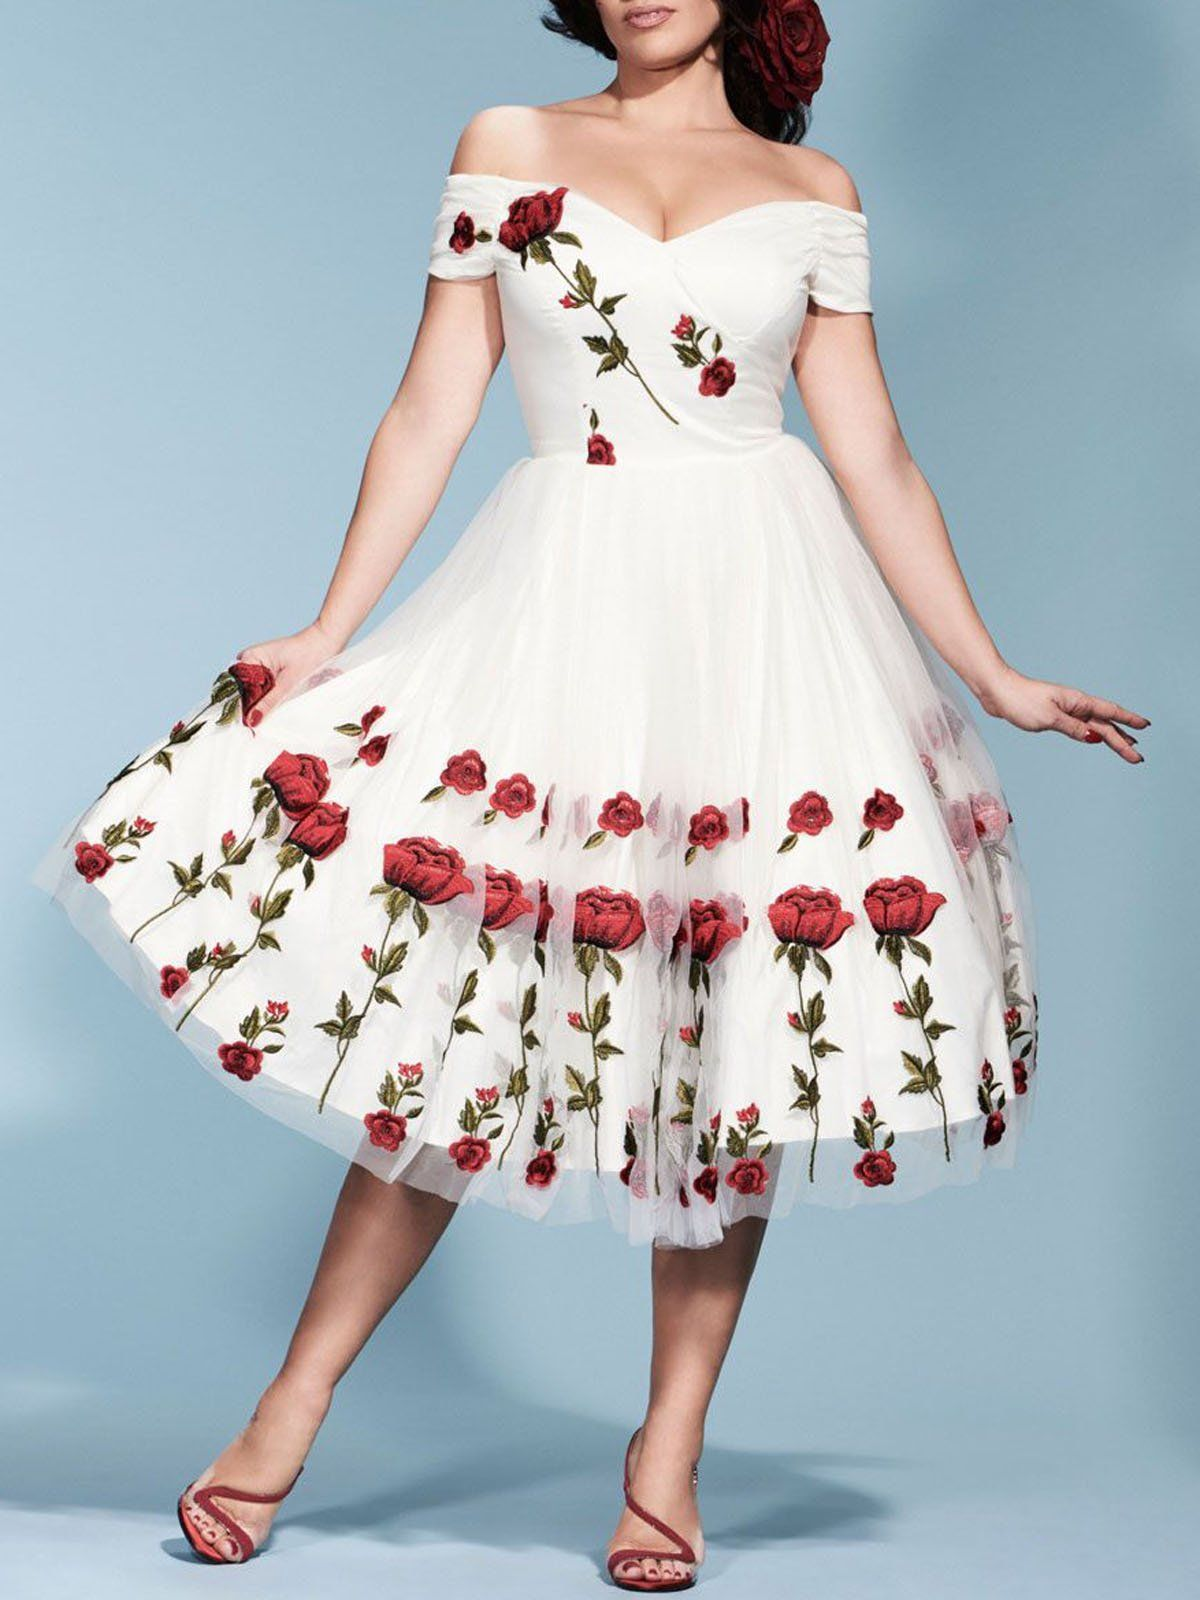 a3e0feaff9697 1950s Rose Embroidery Wedding Dress – Retro Stage - Chic Vintage Dresses  and Accessories